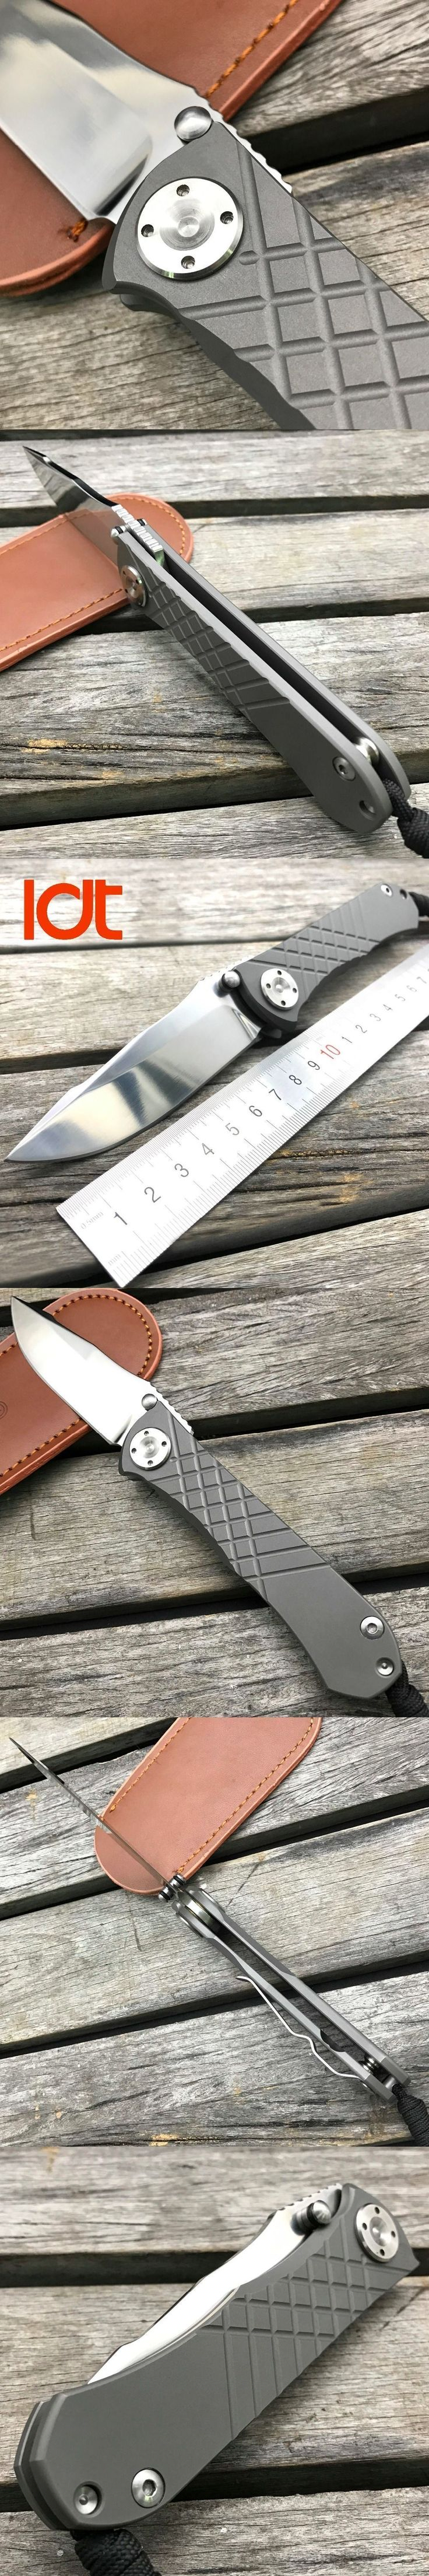 LDT Umnumzaan Folding Blade Knives D2 Blade Titanium Handle Tactical Knife Outdoor Camping Knife Hunting Survival EDC Tools #survivalhunting